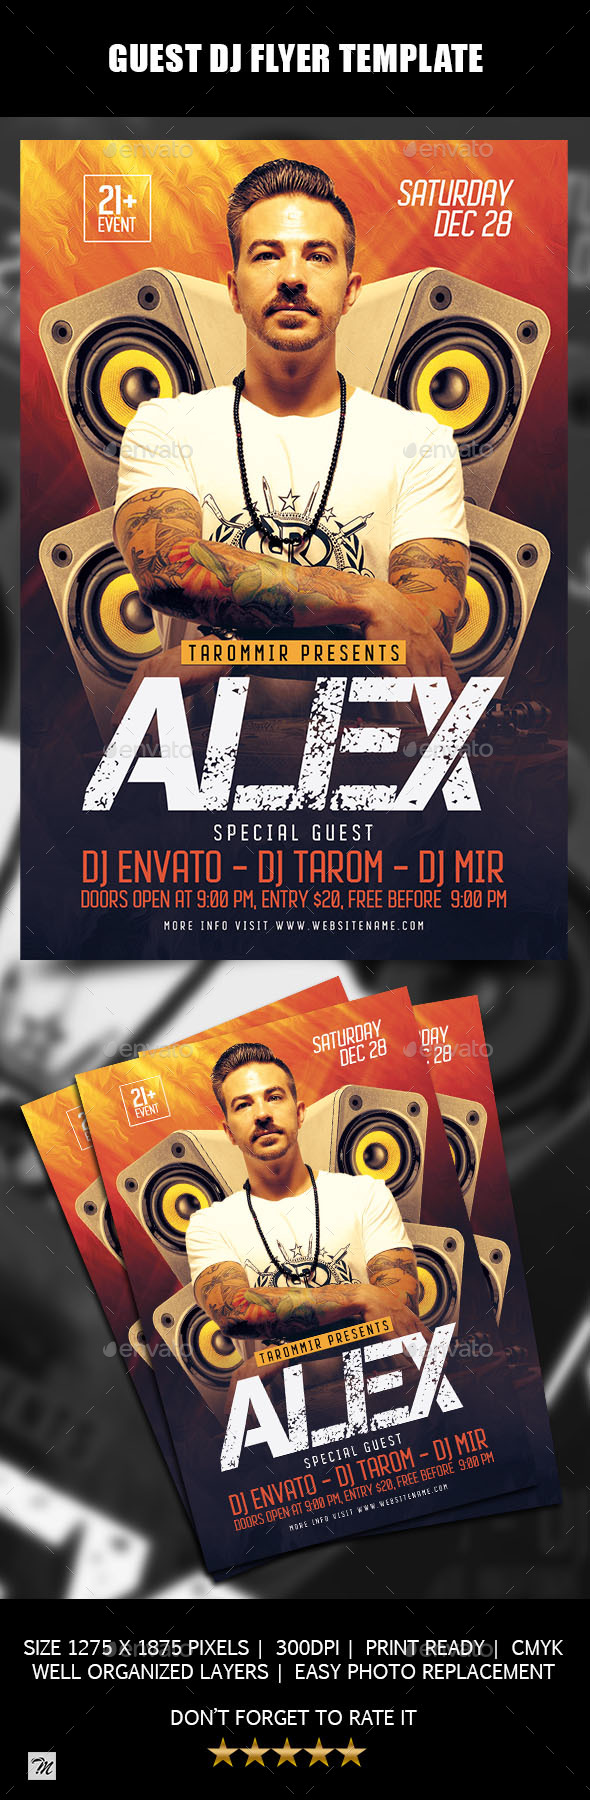 GraphicRiver Guest DJ Flyer Template 21008137